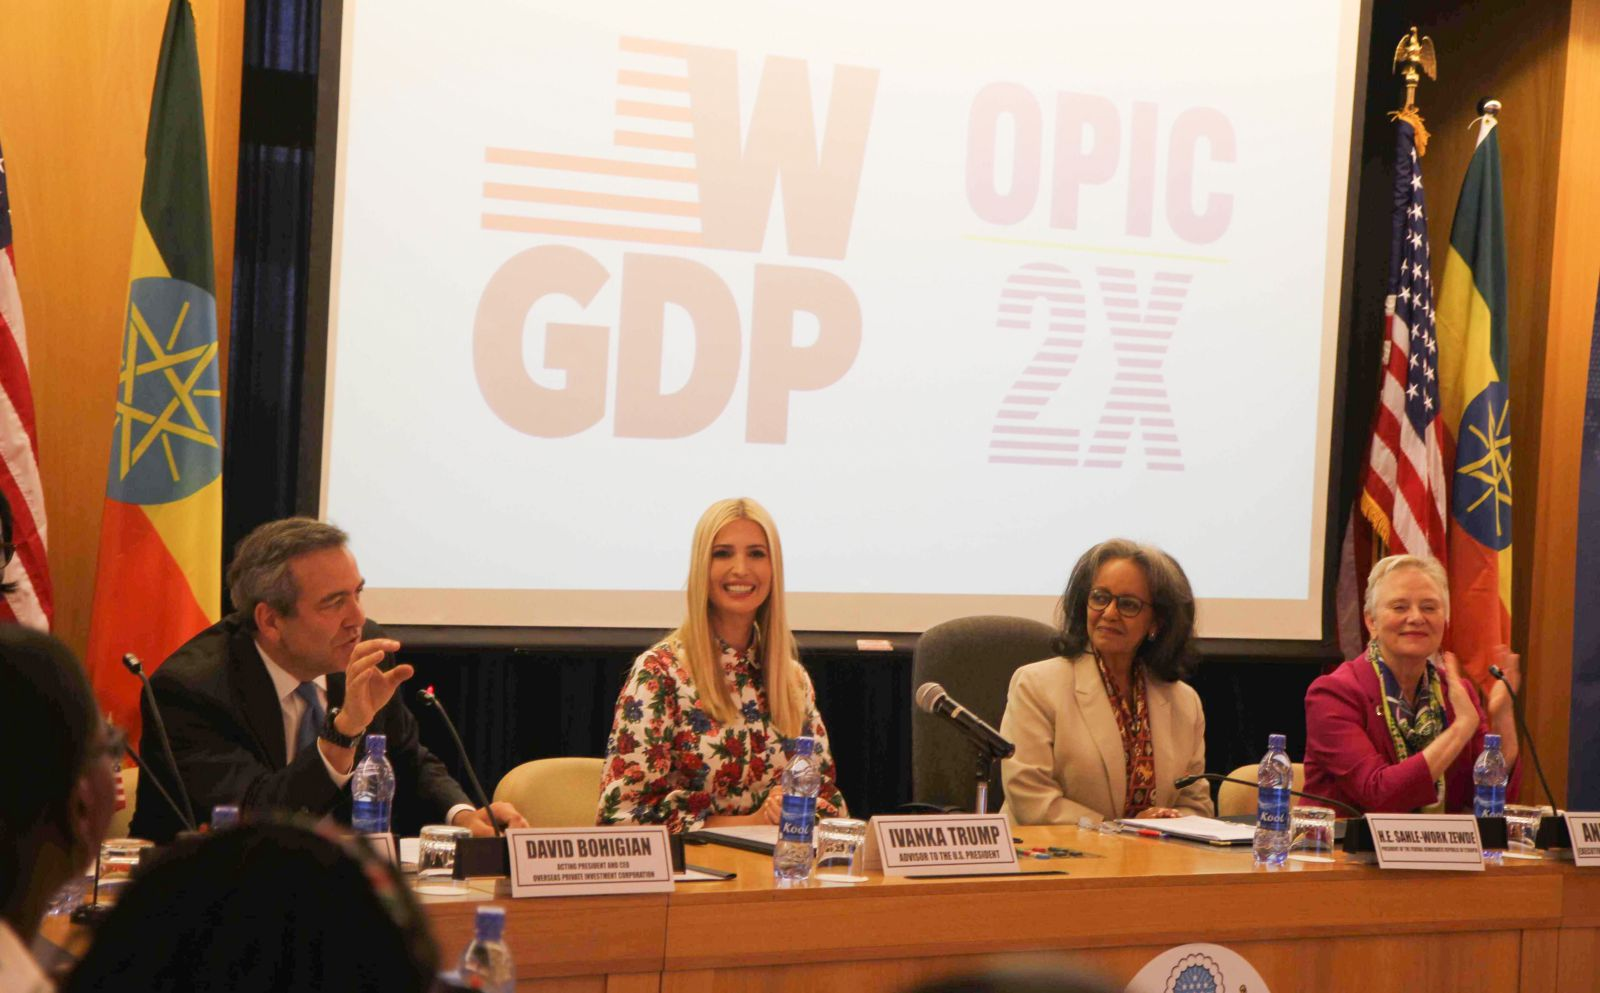 photo, Ivanka Trump and David Bohigian at the WGDP OPIC 2X announcement of 2X Africa, OPIC, Overseas Private Investment Corporation, supporting women entrepreneurs, women's initiative, investing in women